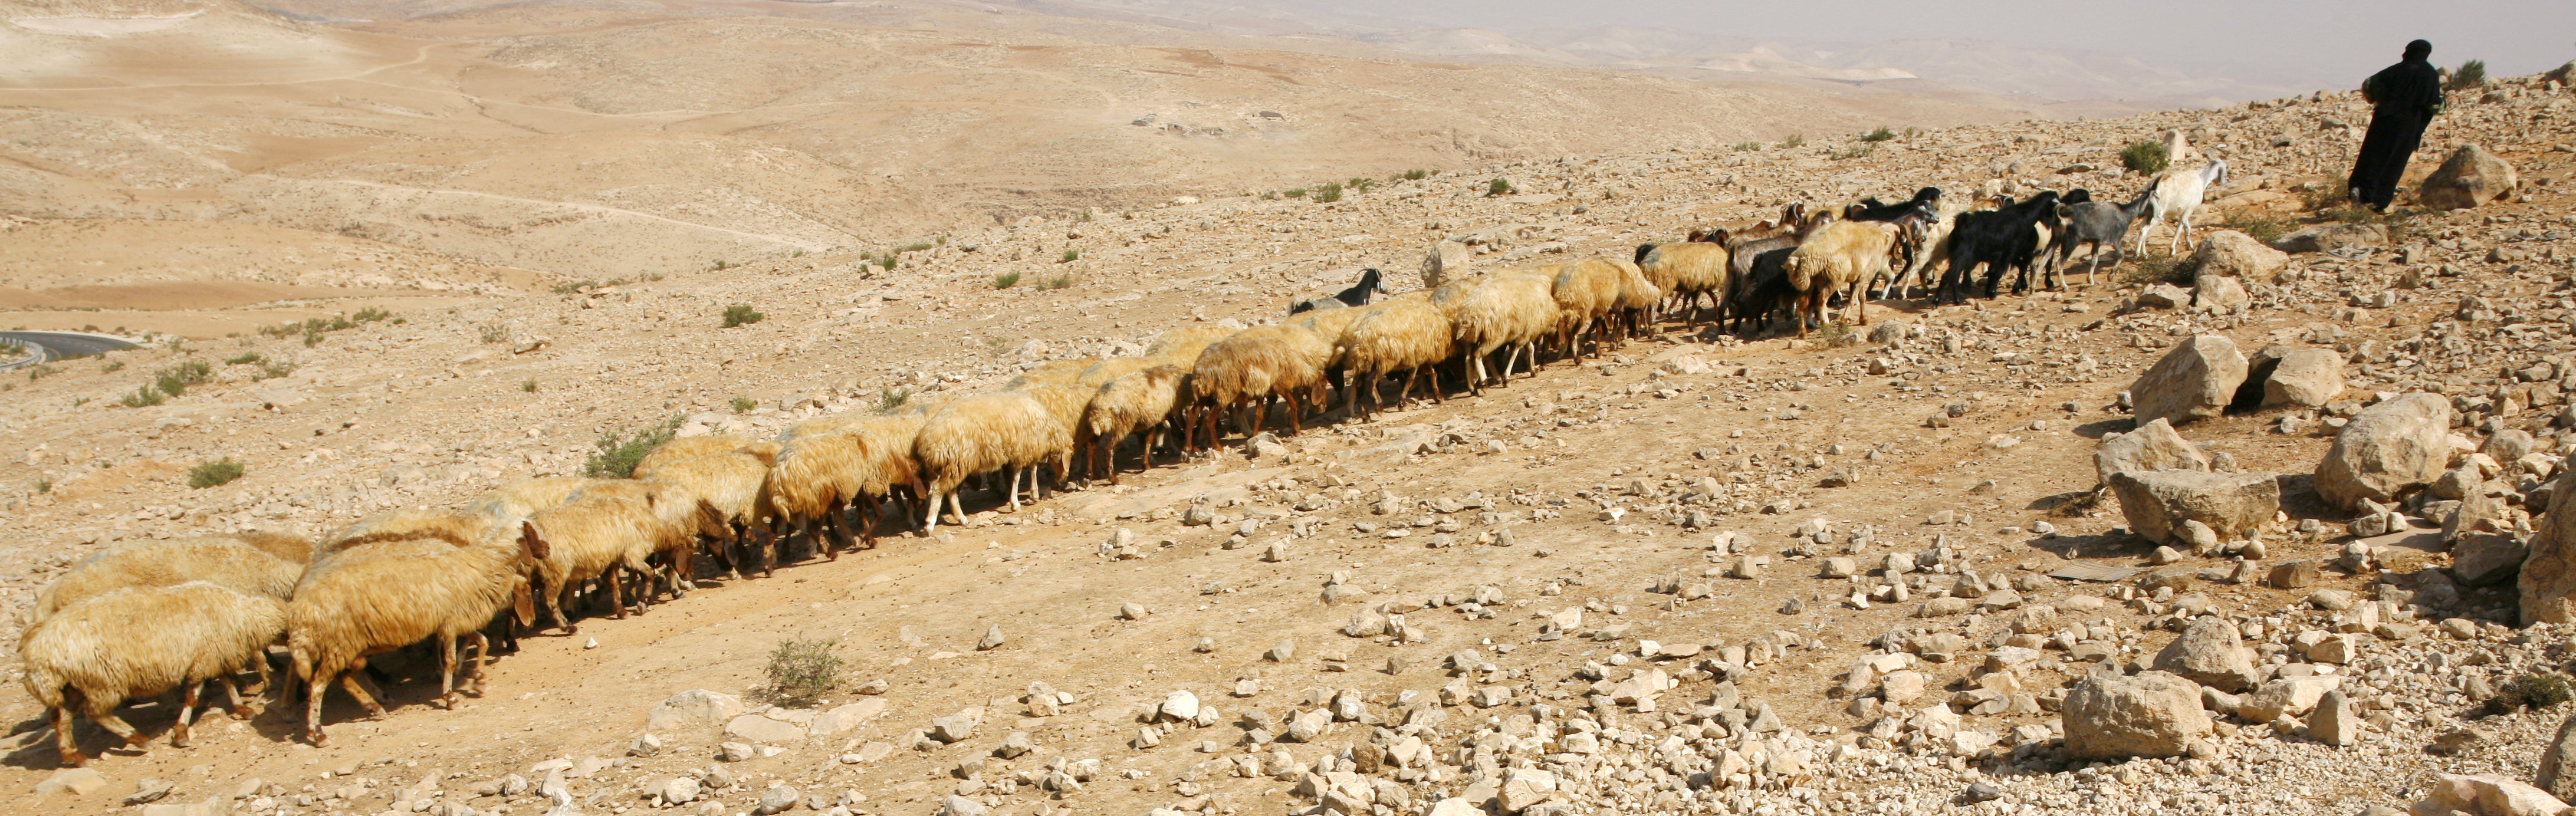 a shepherd leads a line of sheep that extends behind him